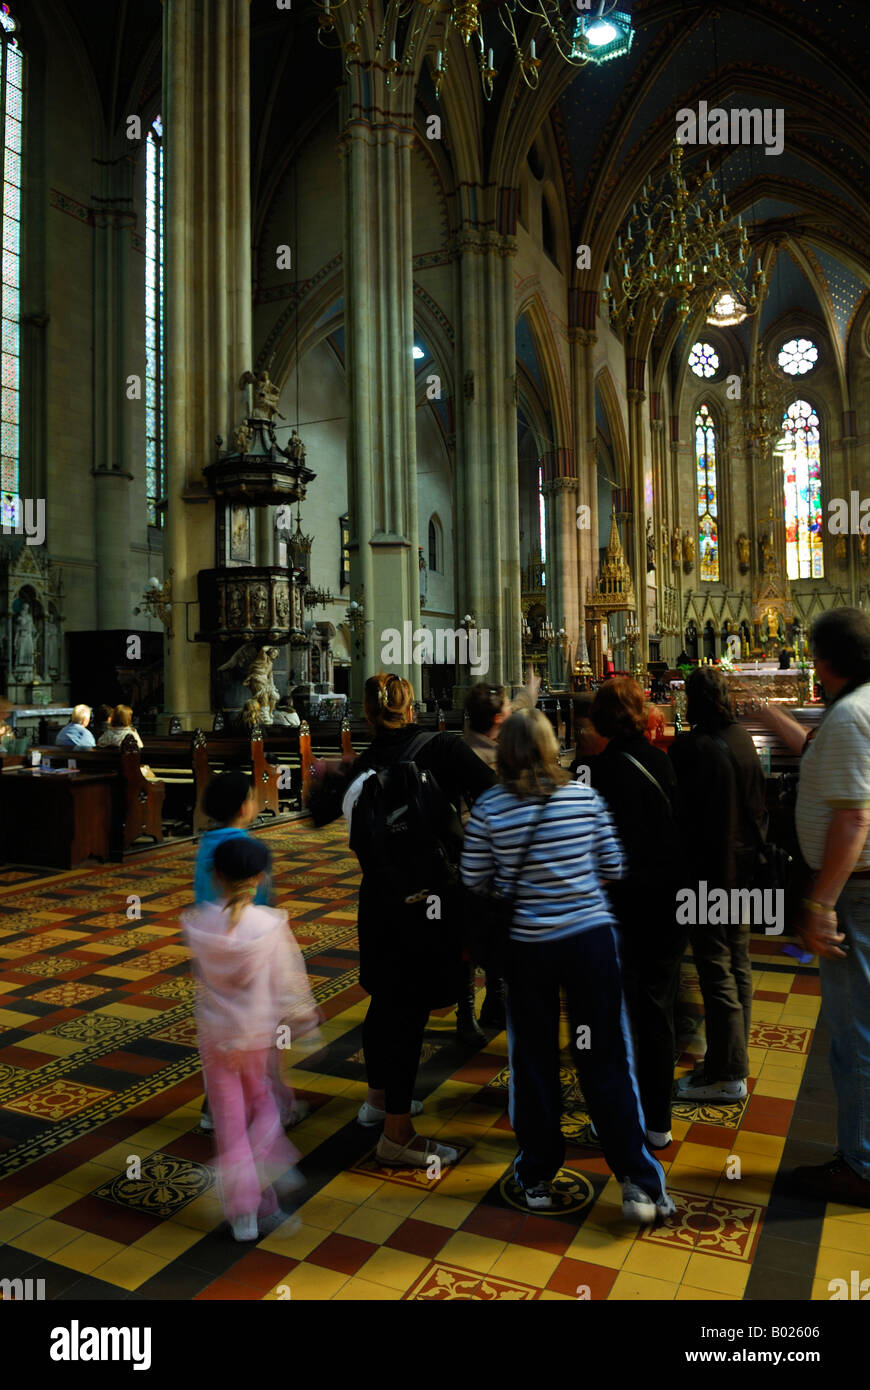 Group Of Tourists Inside Cathedral The Assumption Blessed Virgin Mary Zagreb Croatia